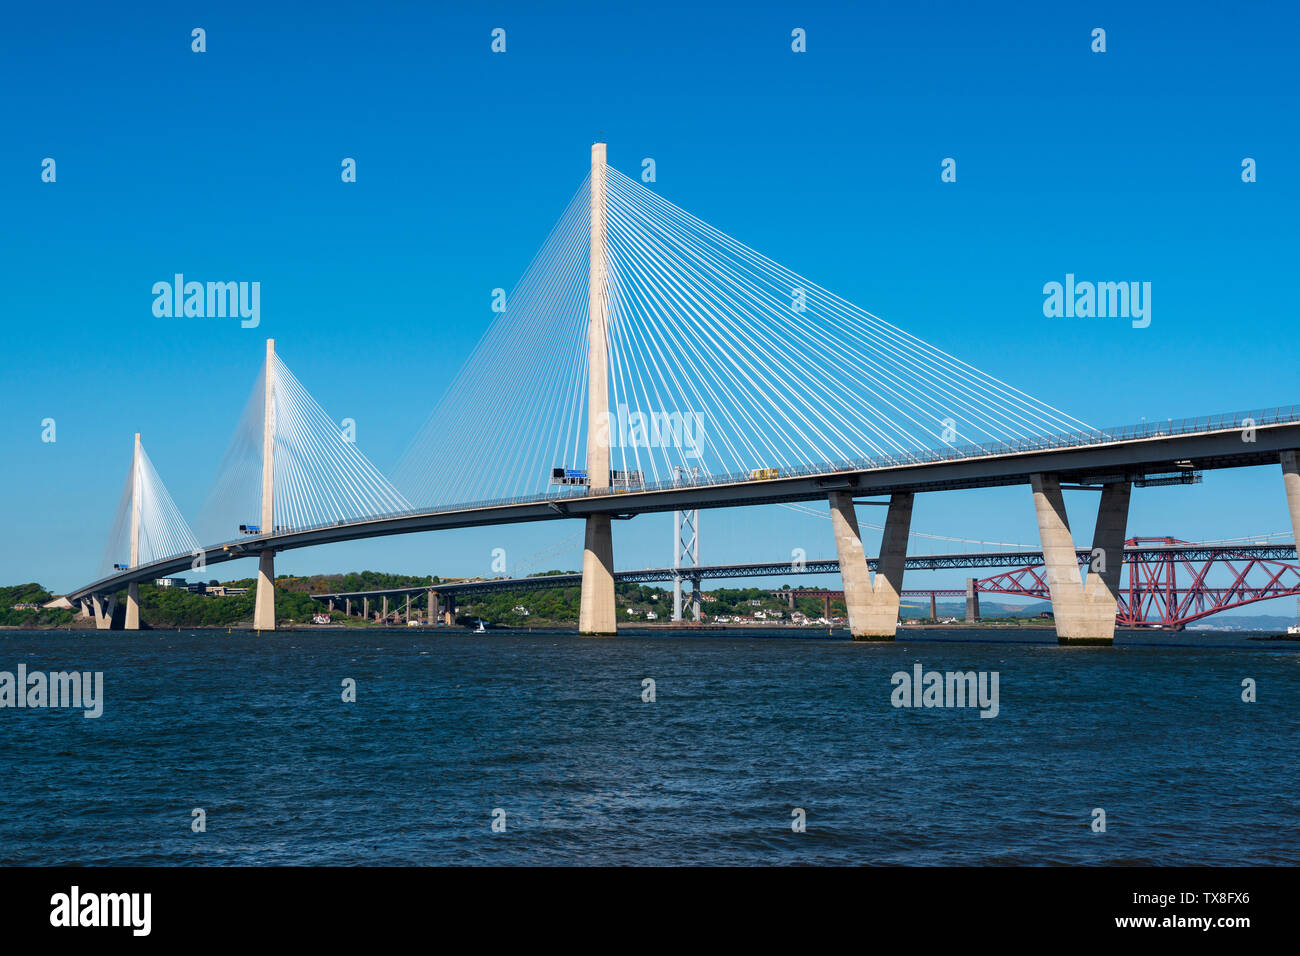 New Queensferry Crossing road bridge, with Forth Road Bridge and Forth Railway Bridge in background, viewed from South Queensferry, Scotland, UK Stock Photo